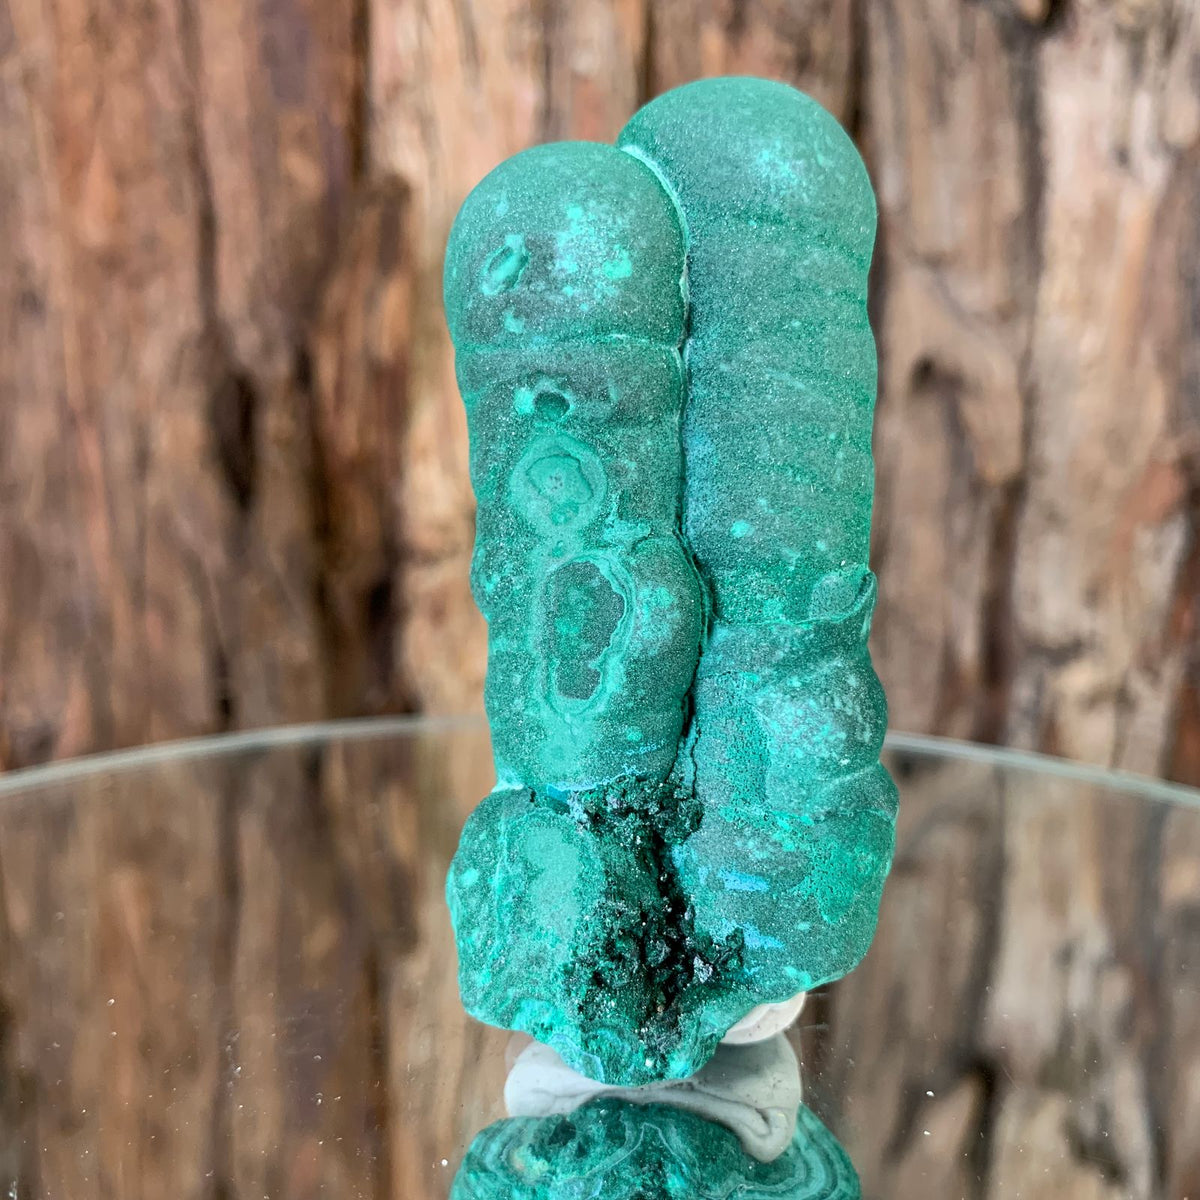 8cm 136g Malachite Stalactite from Sepon Mine, Laos